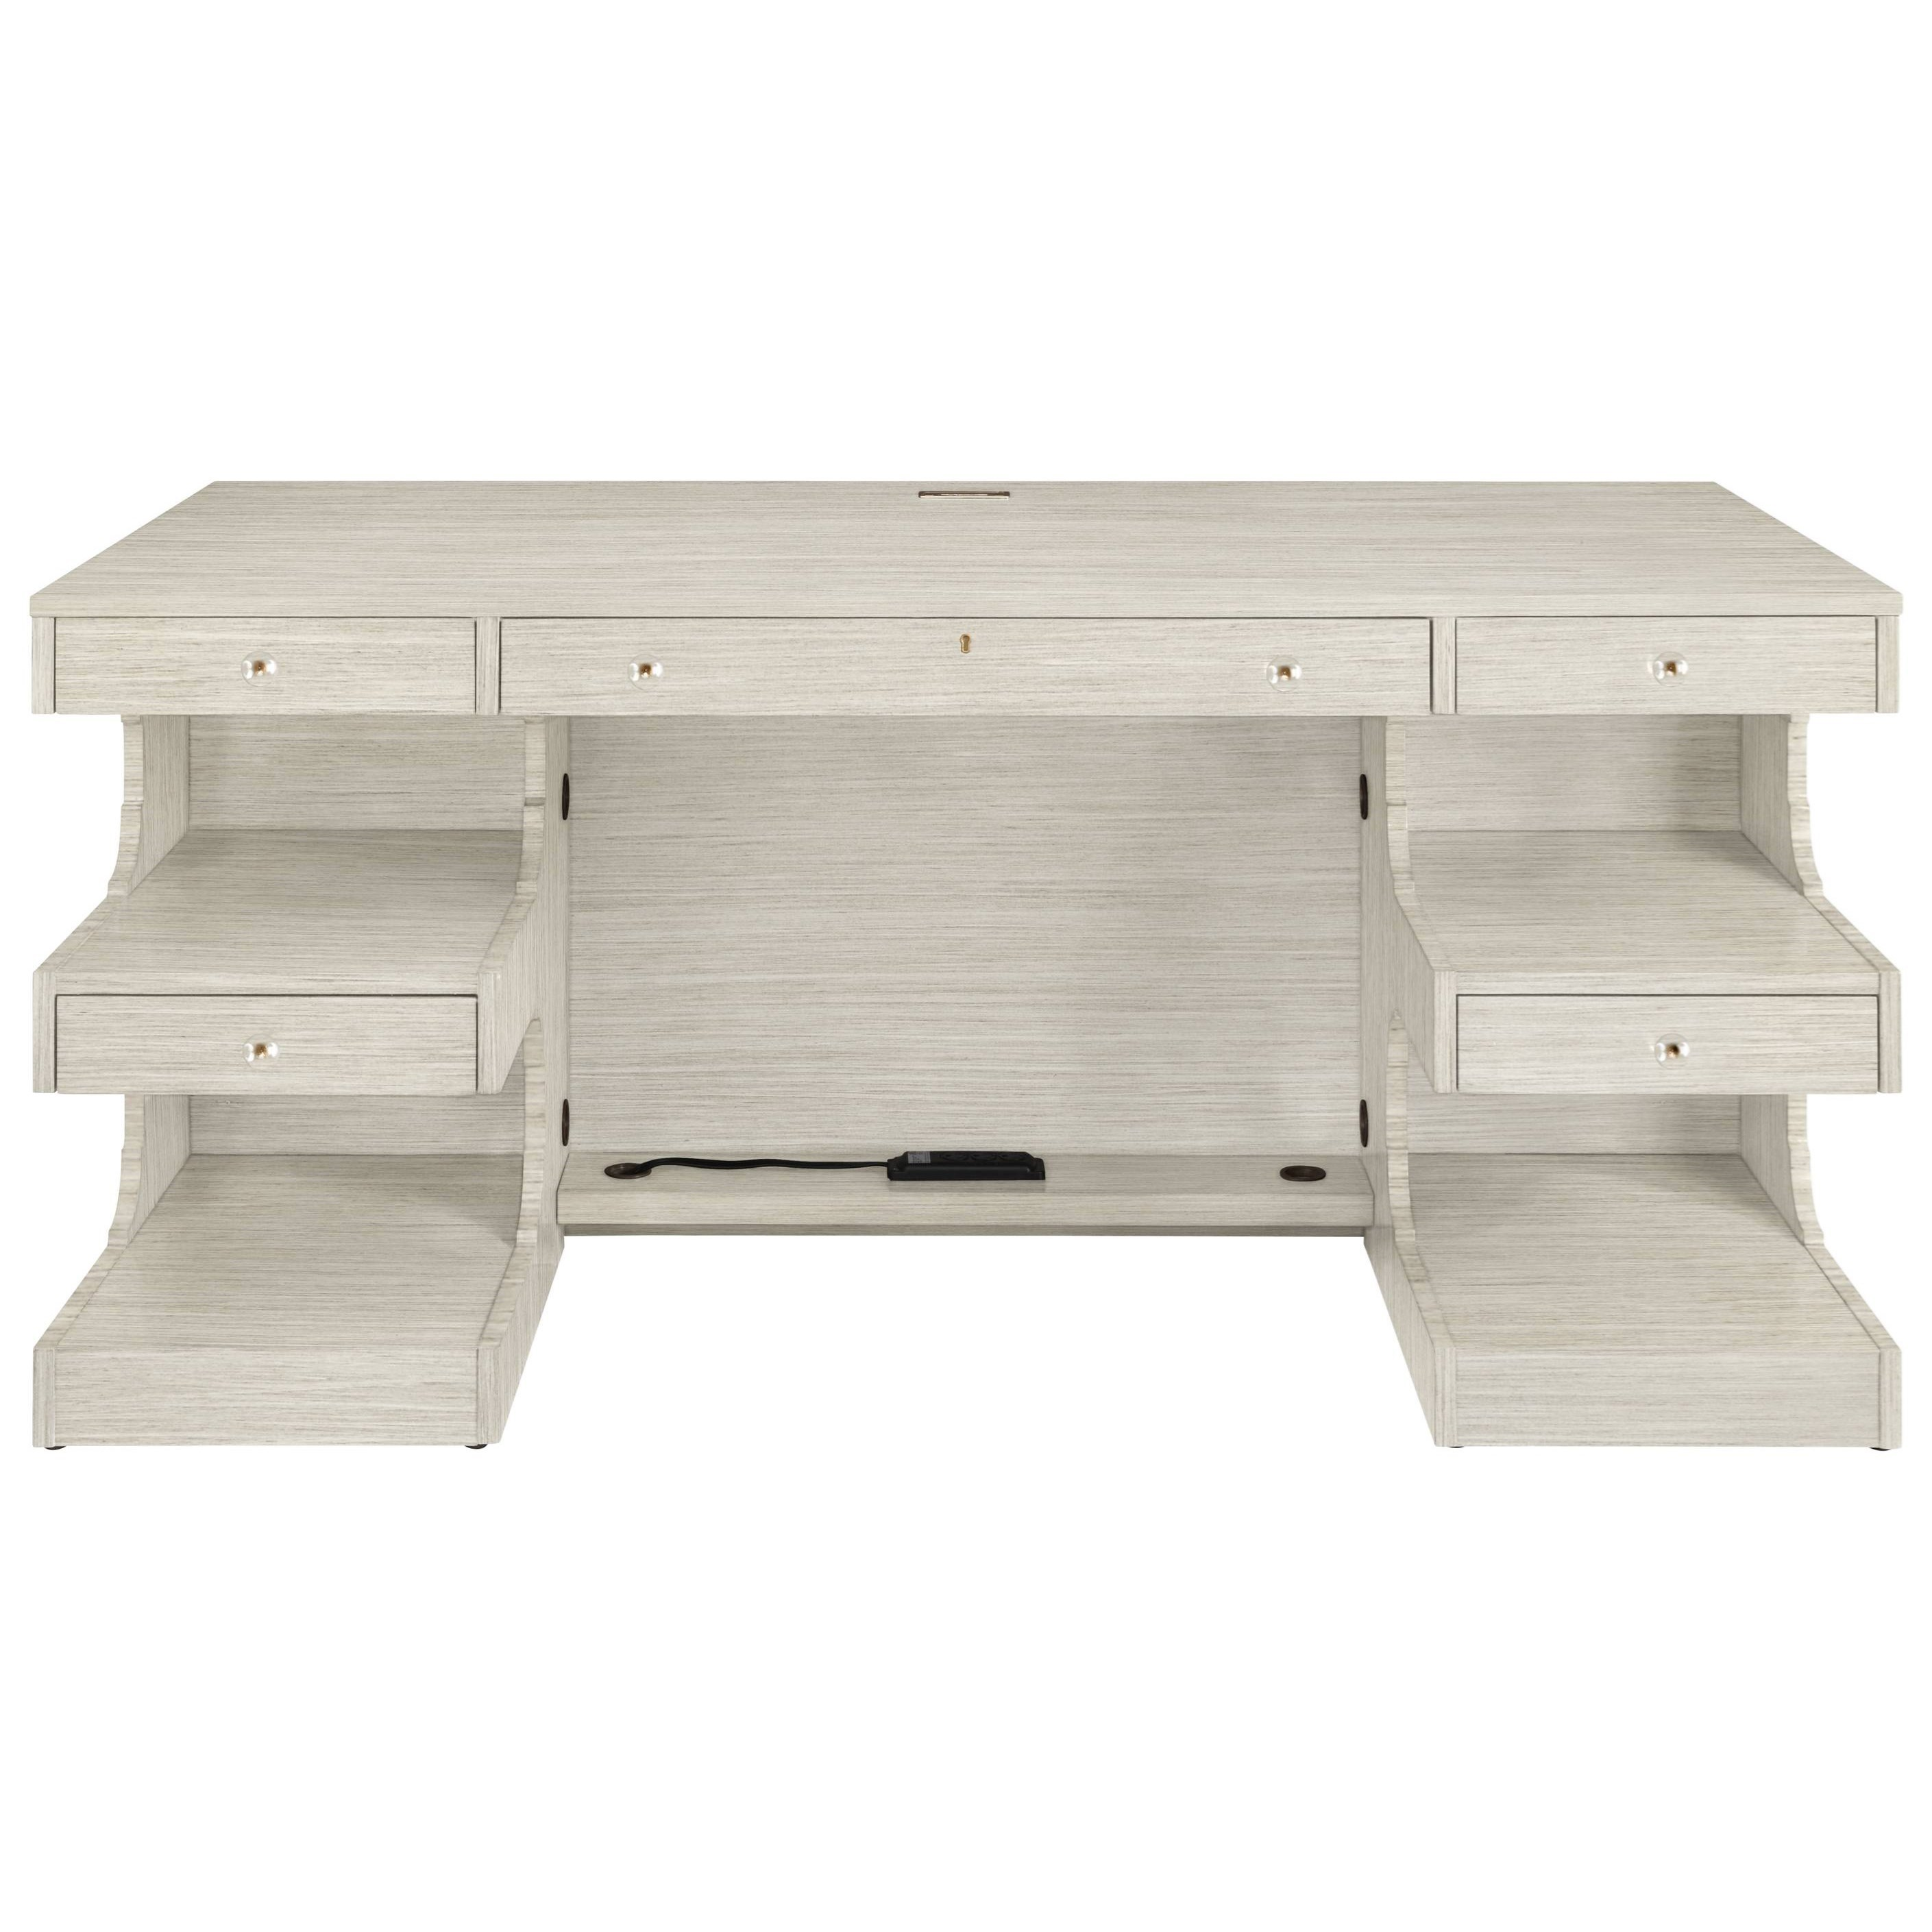 Stanley Furniture Coastal Living Oasis Cape Dutch Writing Desk - Item Number: 527-55-03